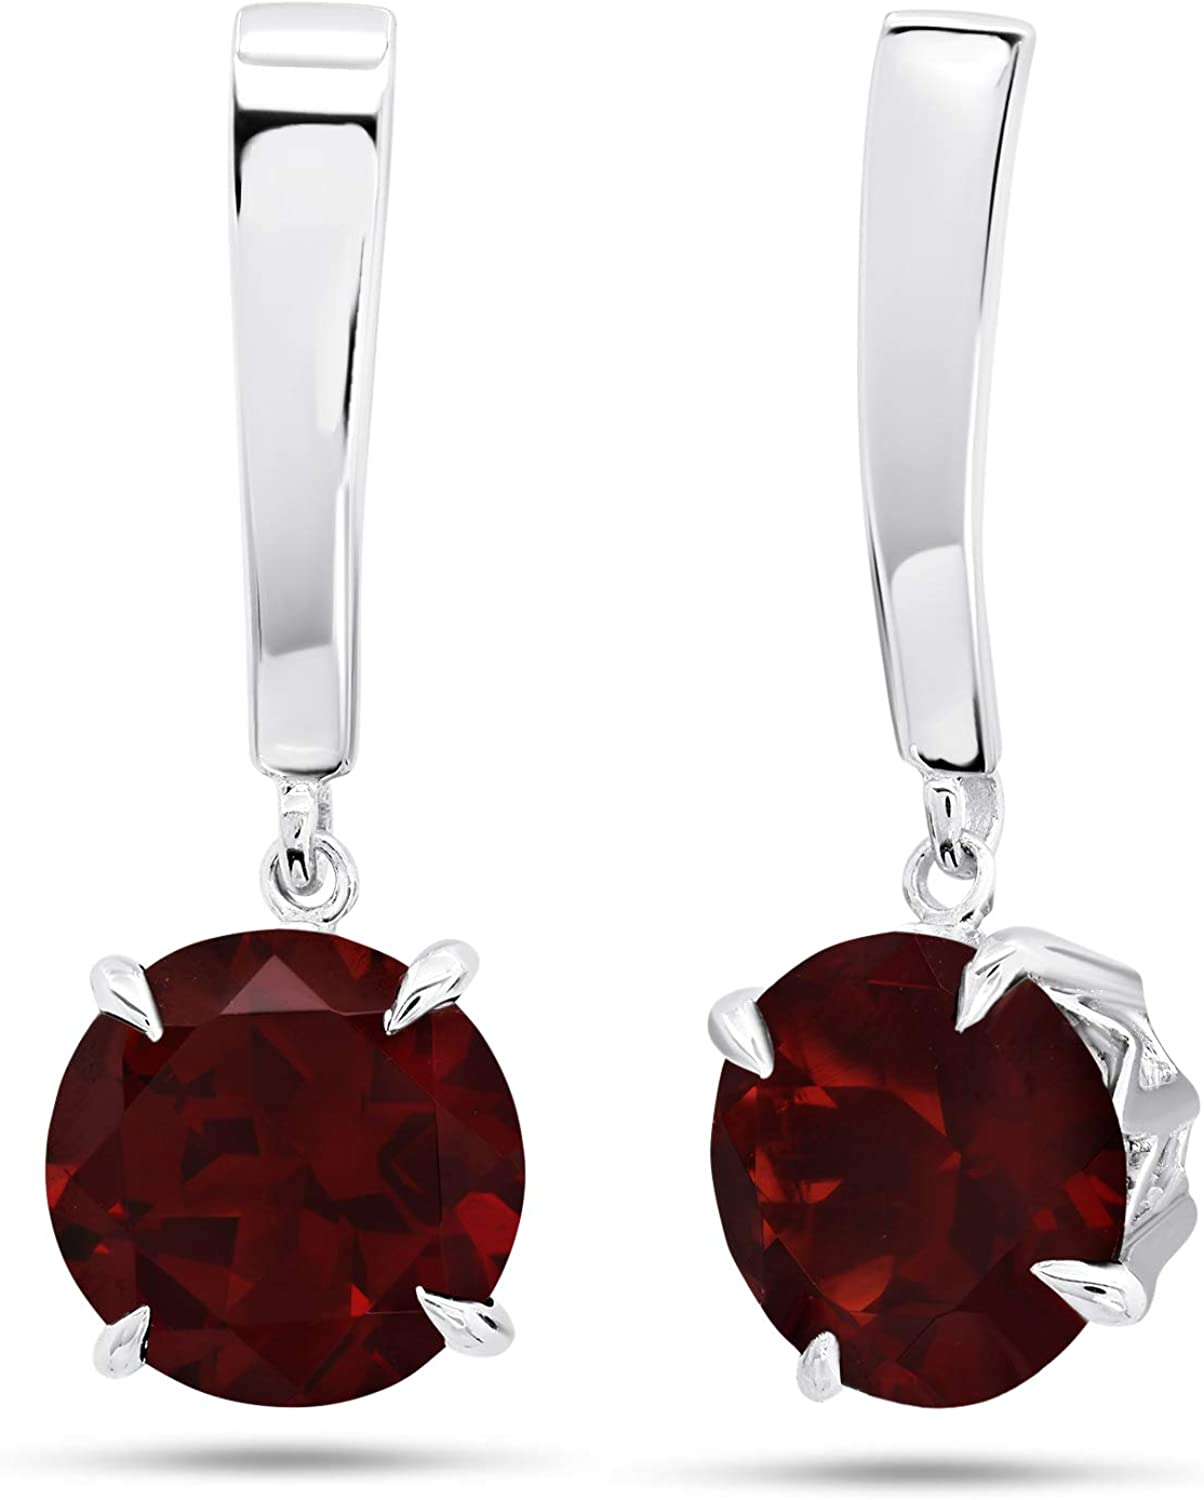 Nicole Miller Fine Jewelry - Sterling Silver with 8mm Round Cut Gemstone Dangle Drop Earrings